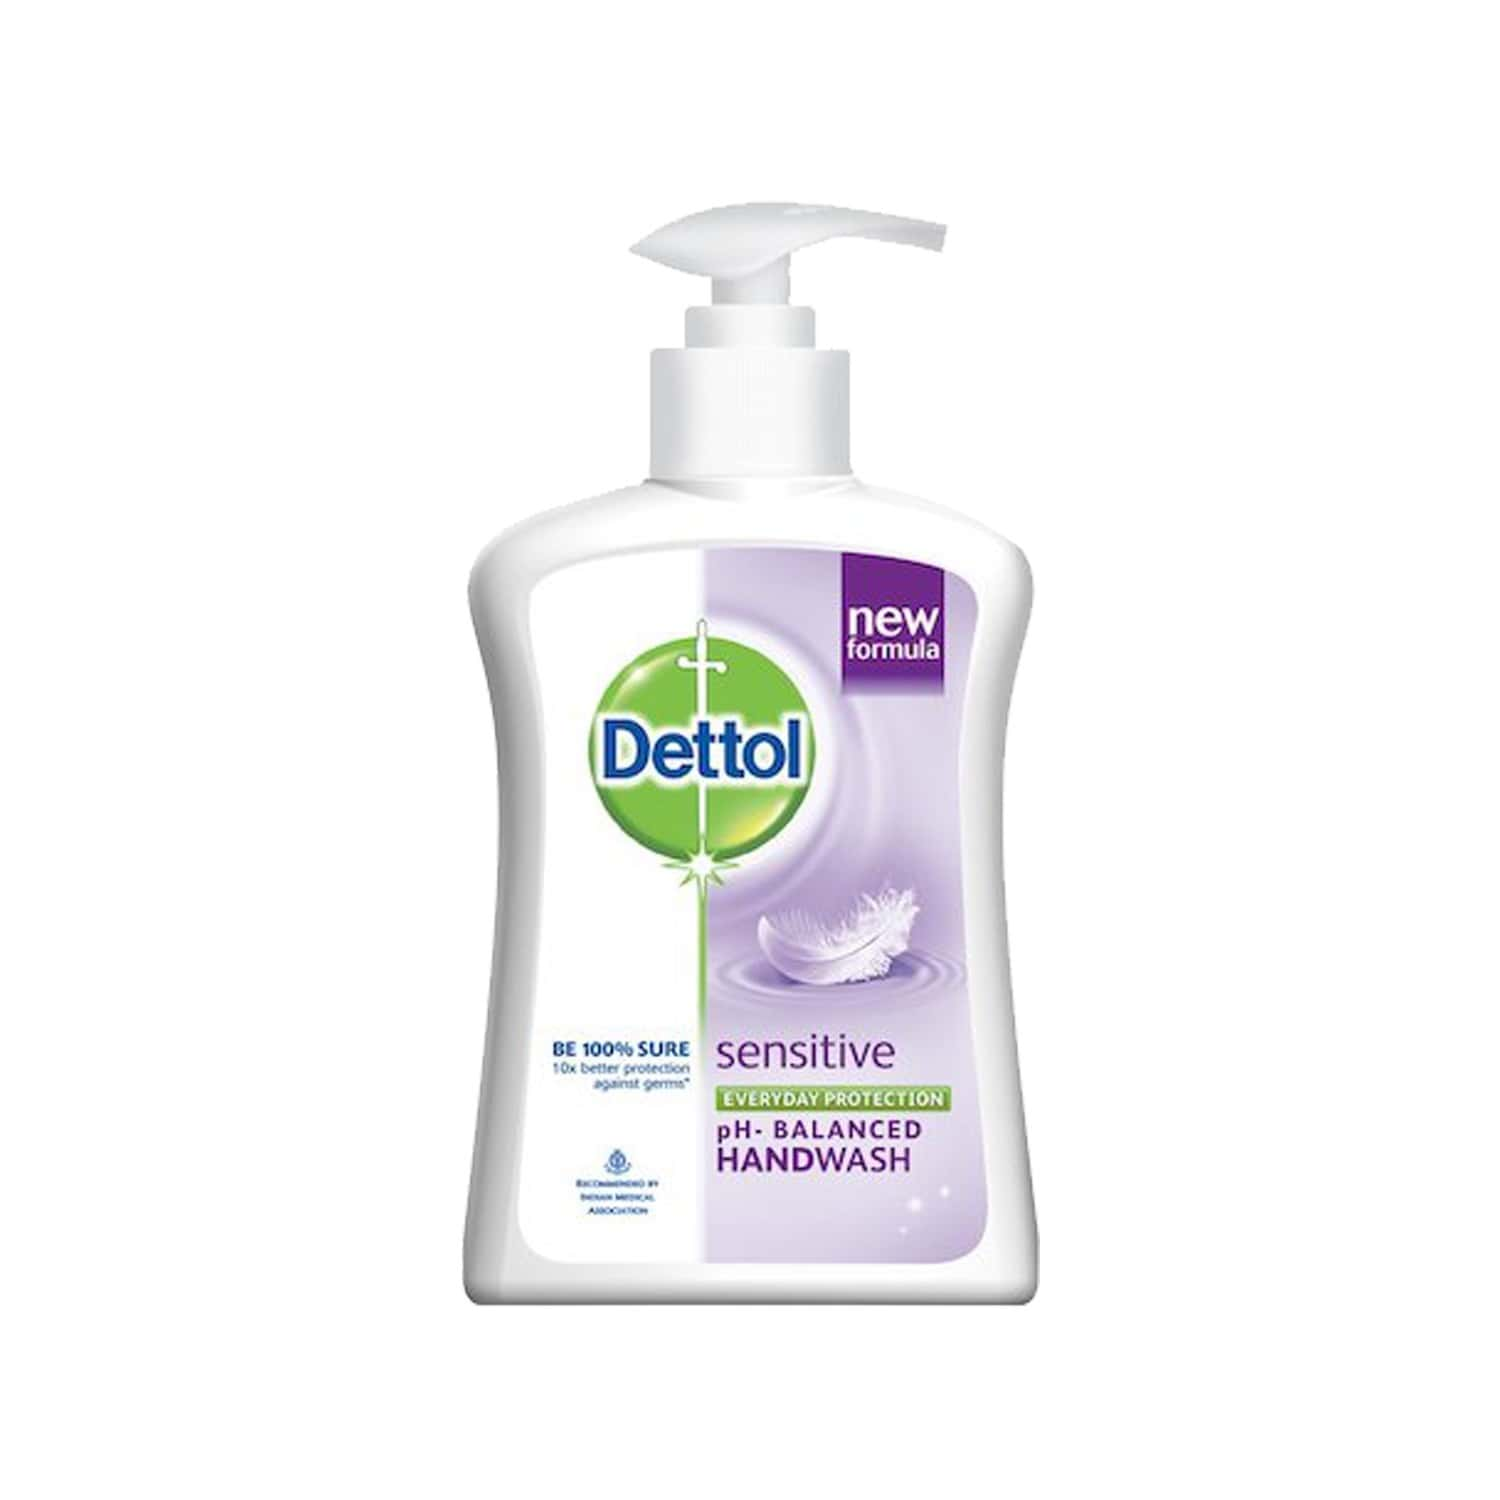 Dettol Germ Protection Liquid Hand Wash Sensitive 200 Ml, Get Free 185 Ml Refill Pack